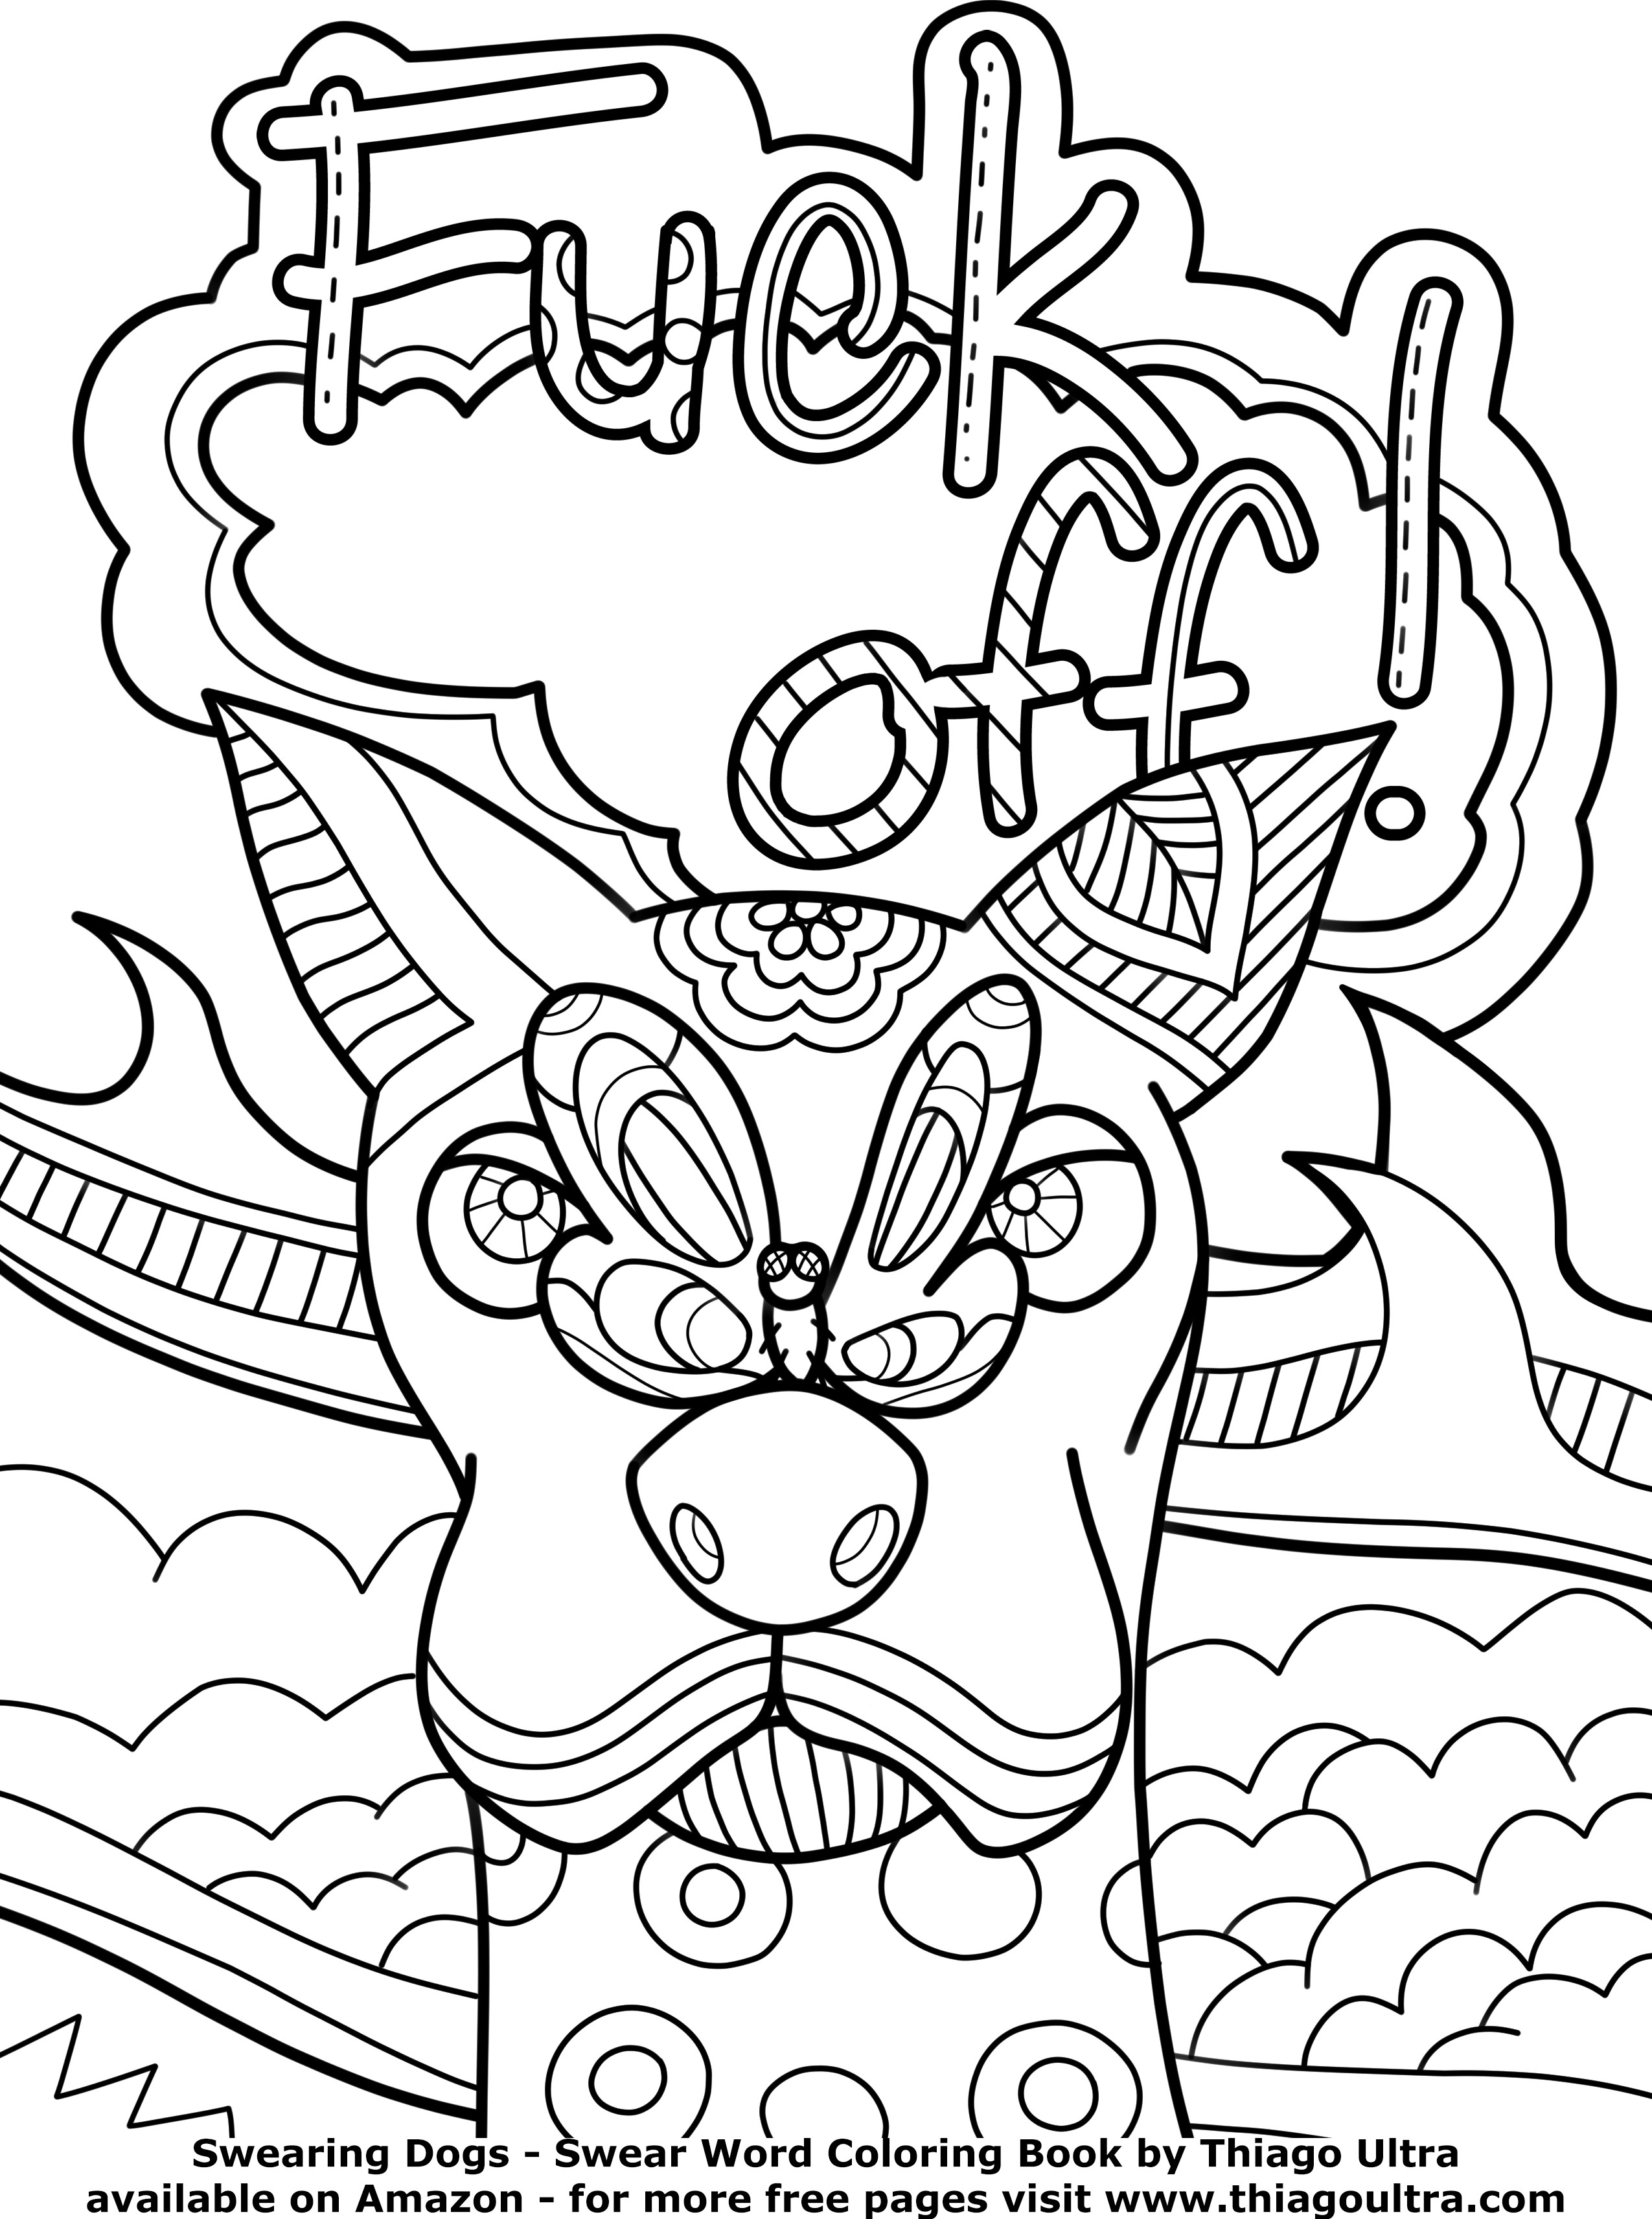 Hard Dog Coloring Pages At Getdrawings